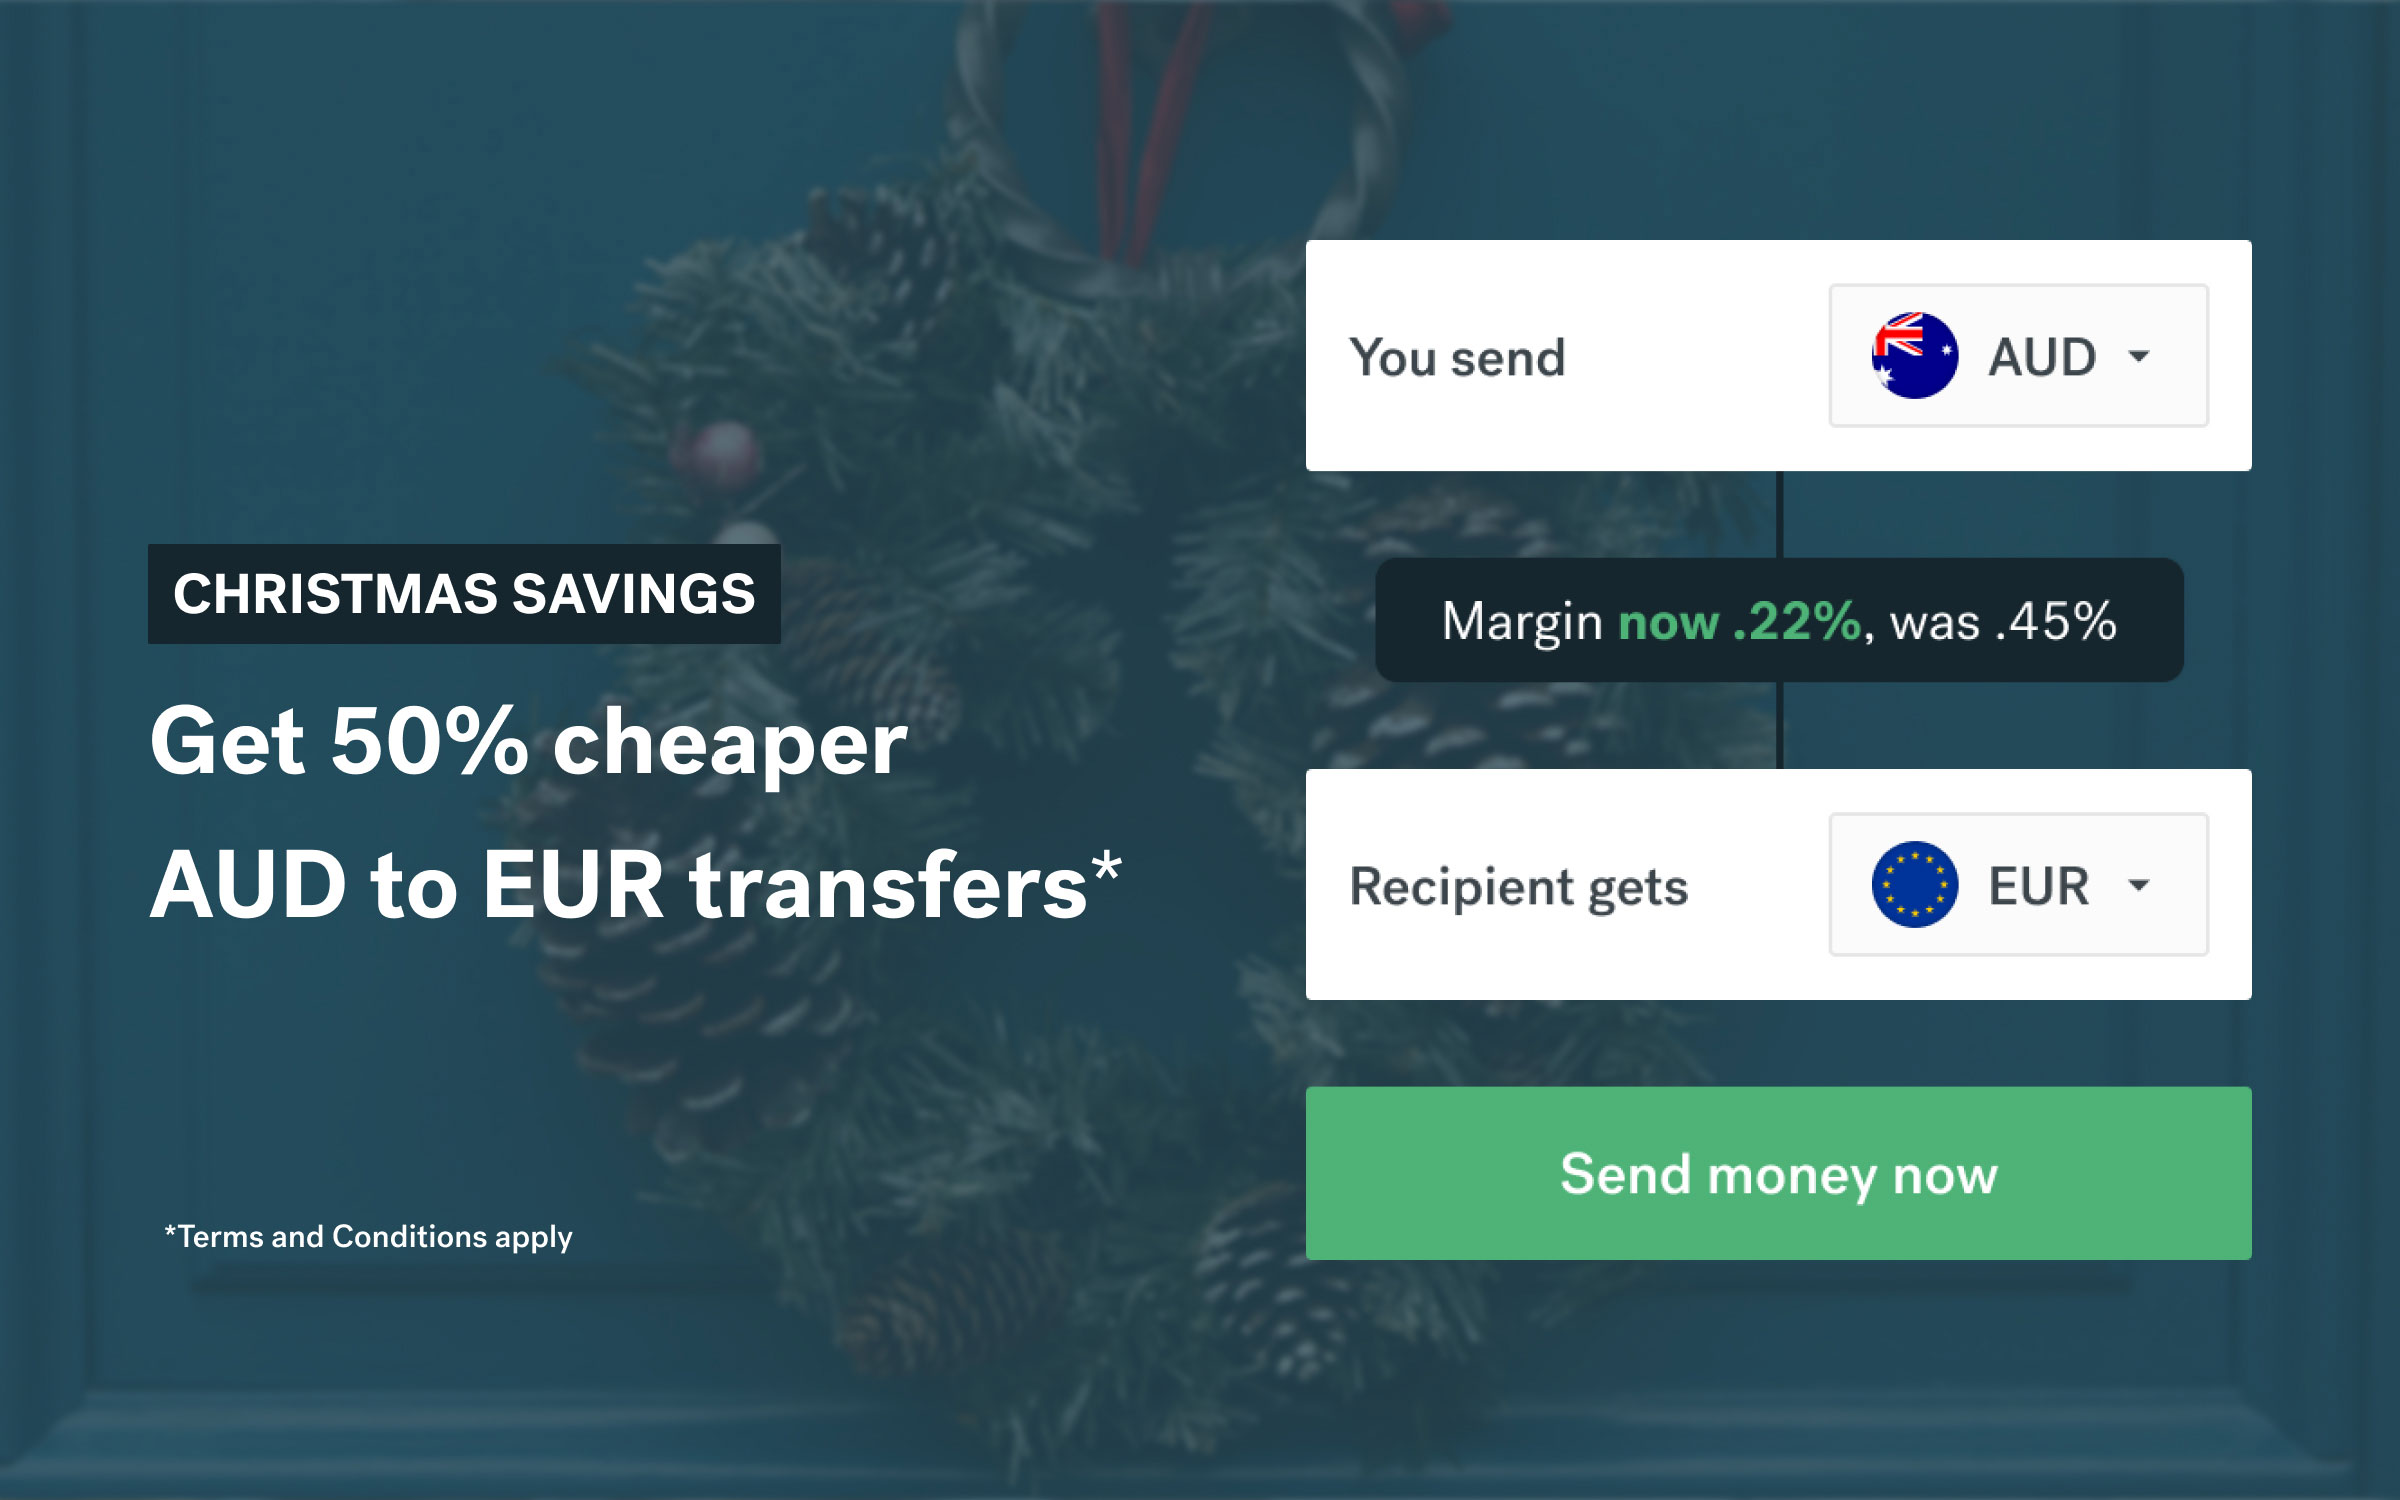 Exchanging AUD to EUR this Christmas? Enjoy 50% off